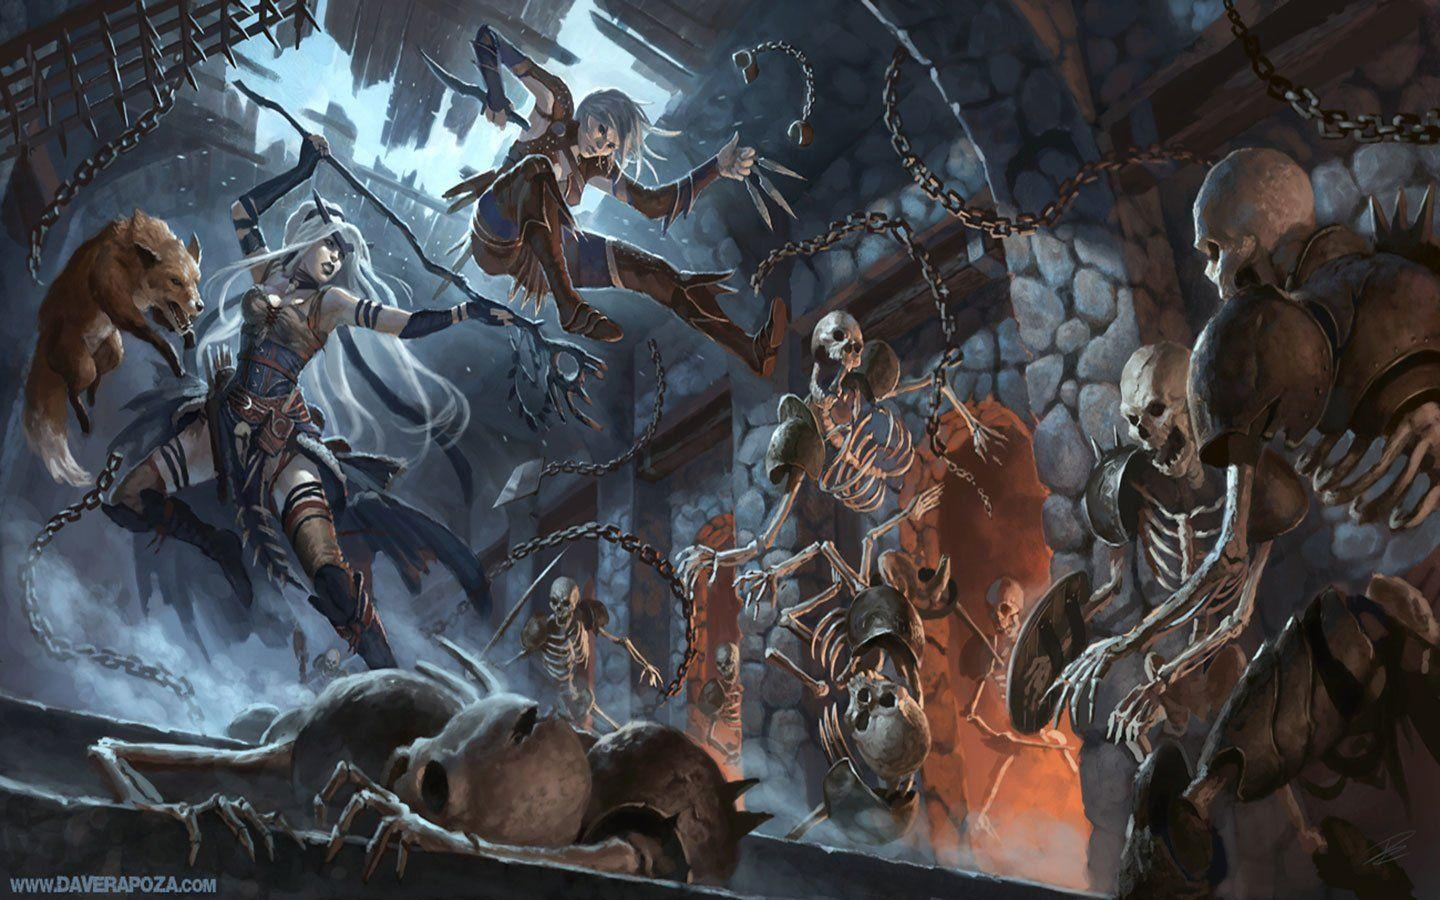 35 Dungeons & Dragons HD Wallpapers | Backgrounds - Wallpaper Abyss